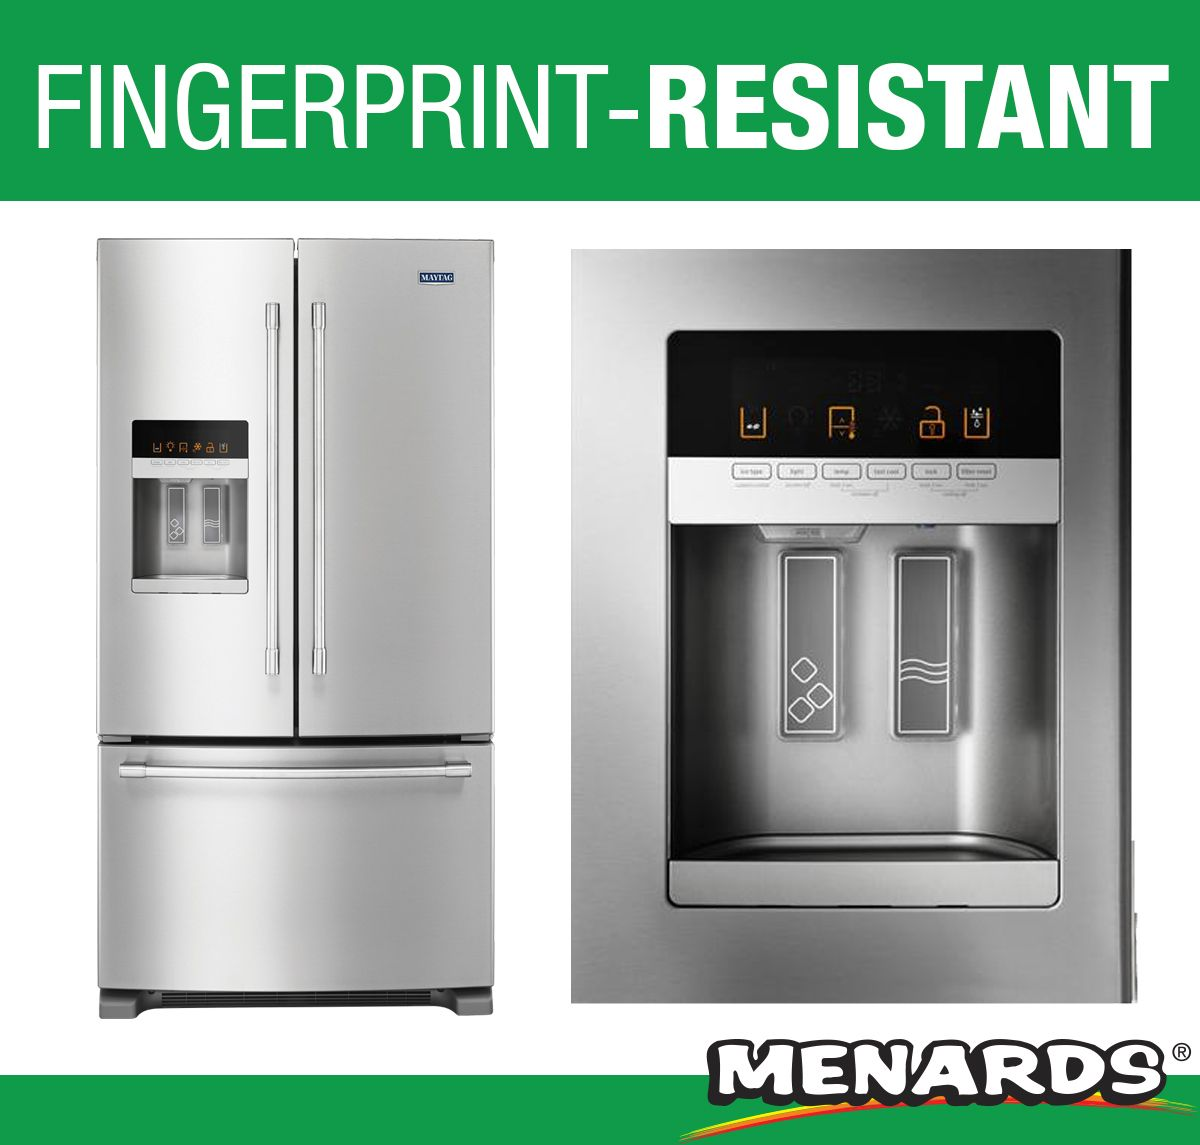 This Maytag French Door Refrigerator Is Easy To Clean Fingerprint Resistant And Offers Plenty Of Space F French Door Refrigerator Best Appliances Refrigerator